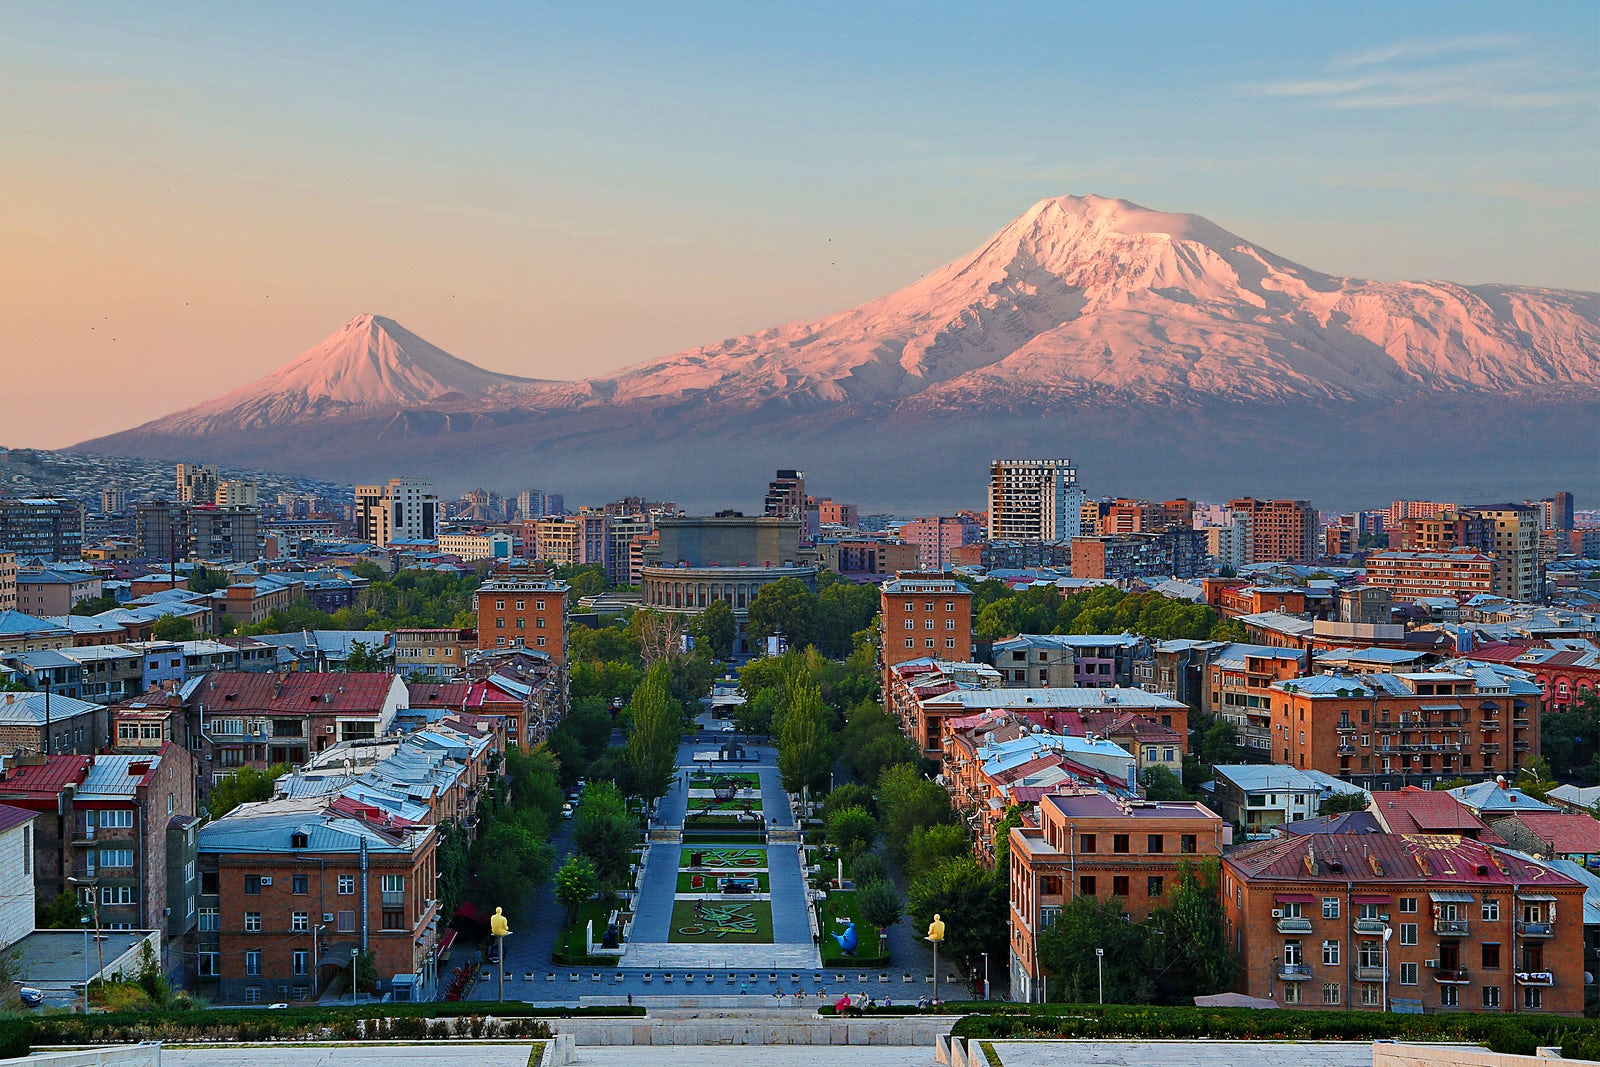 !i18n:en:data.cities:yerevan.picture.caption